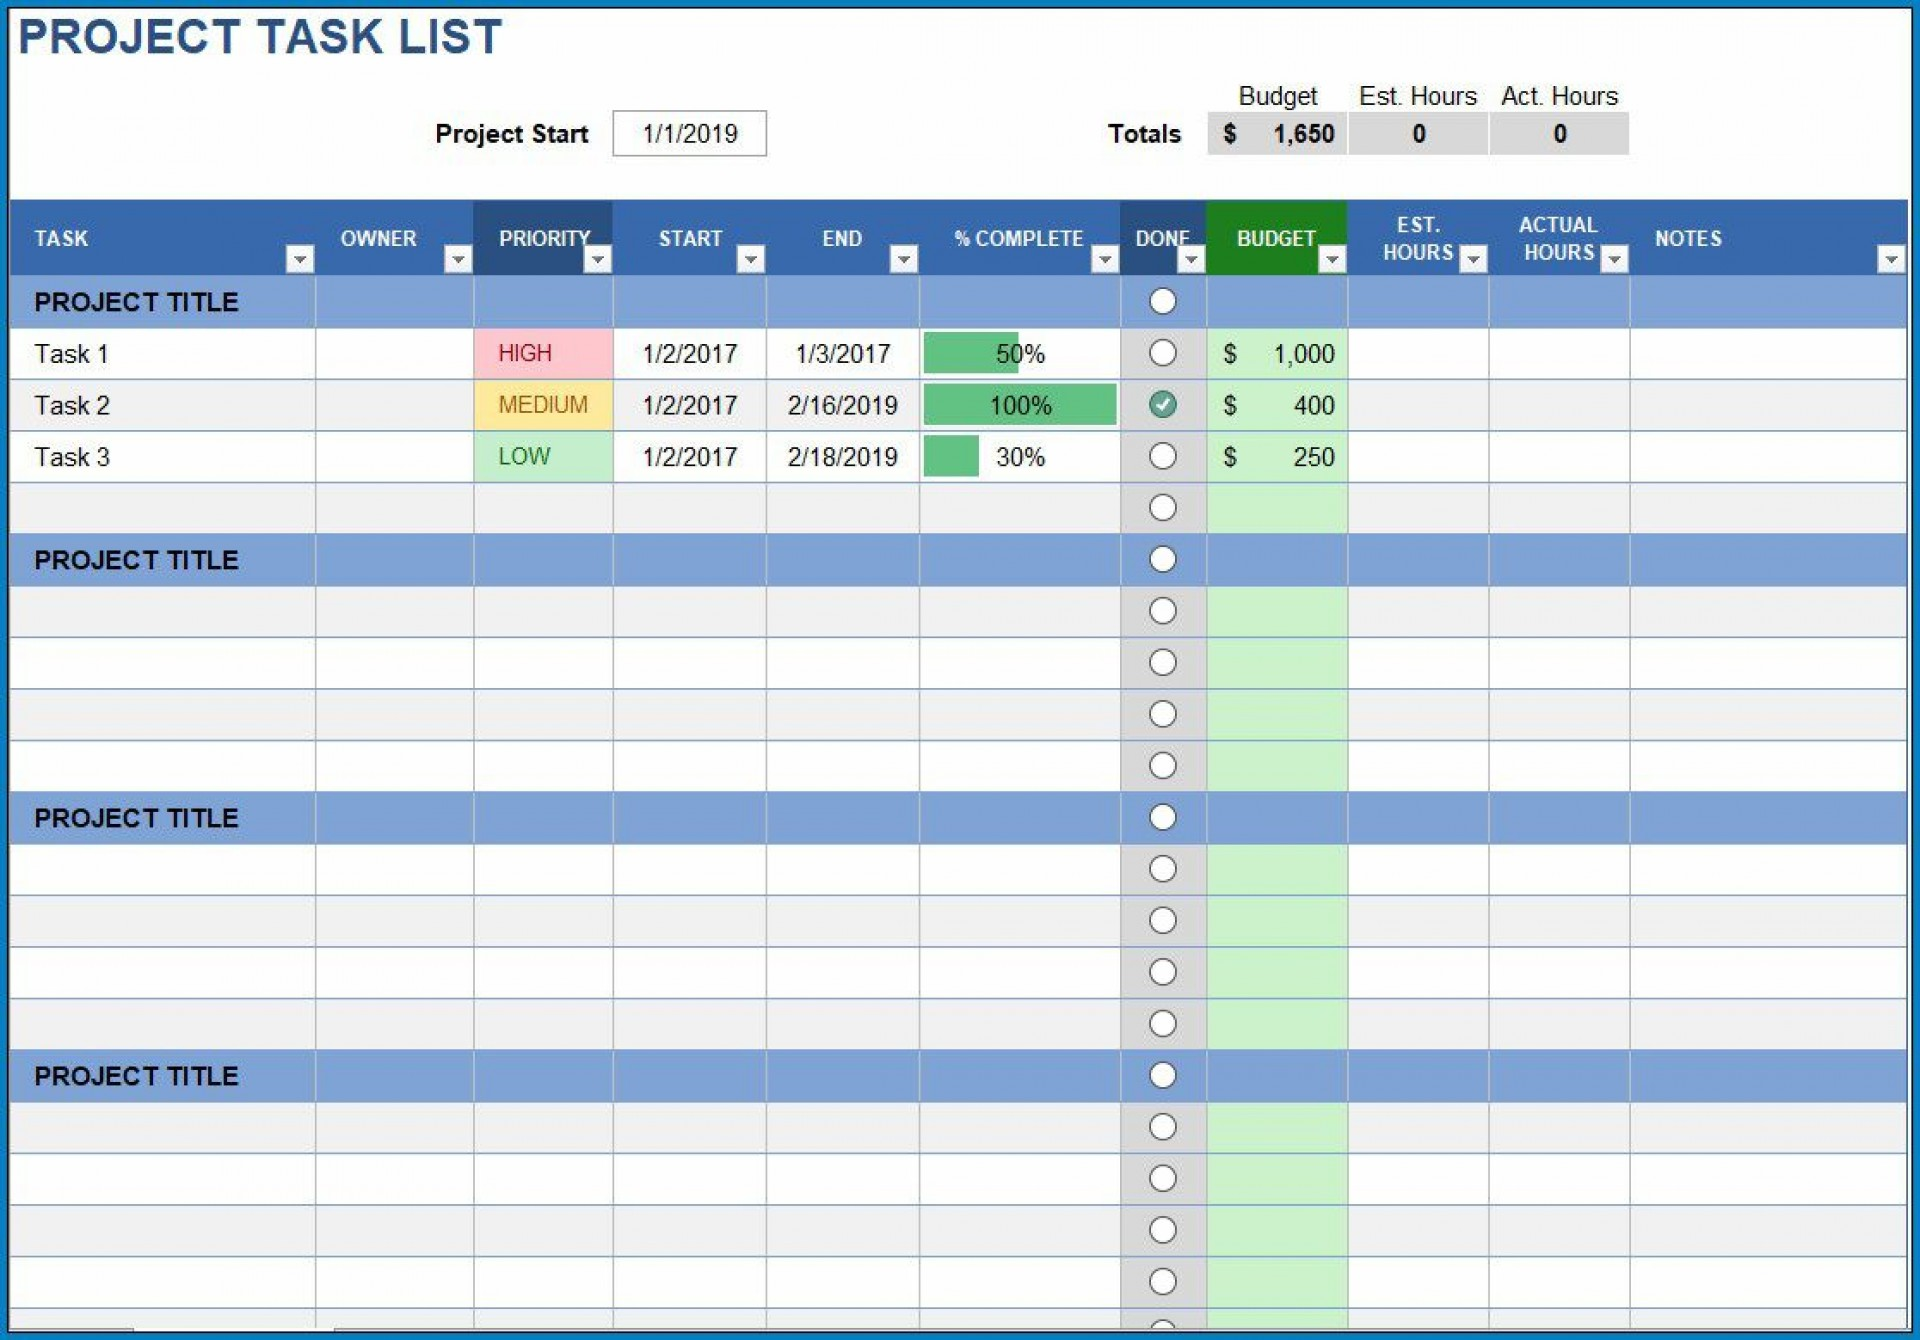 008 Marvelou Task List Template Excel High Def  Daily To Do Free Download Format1920